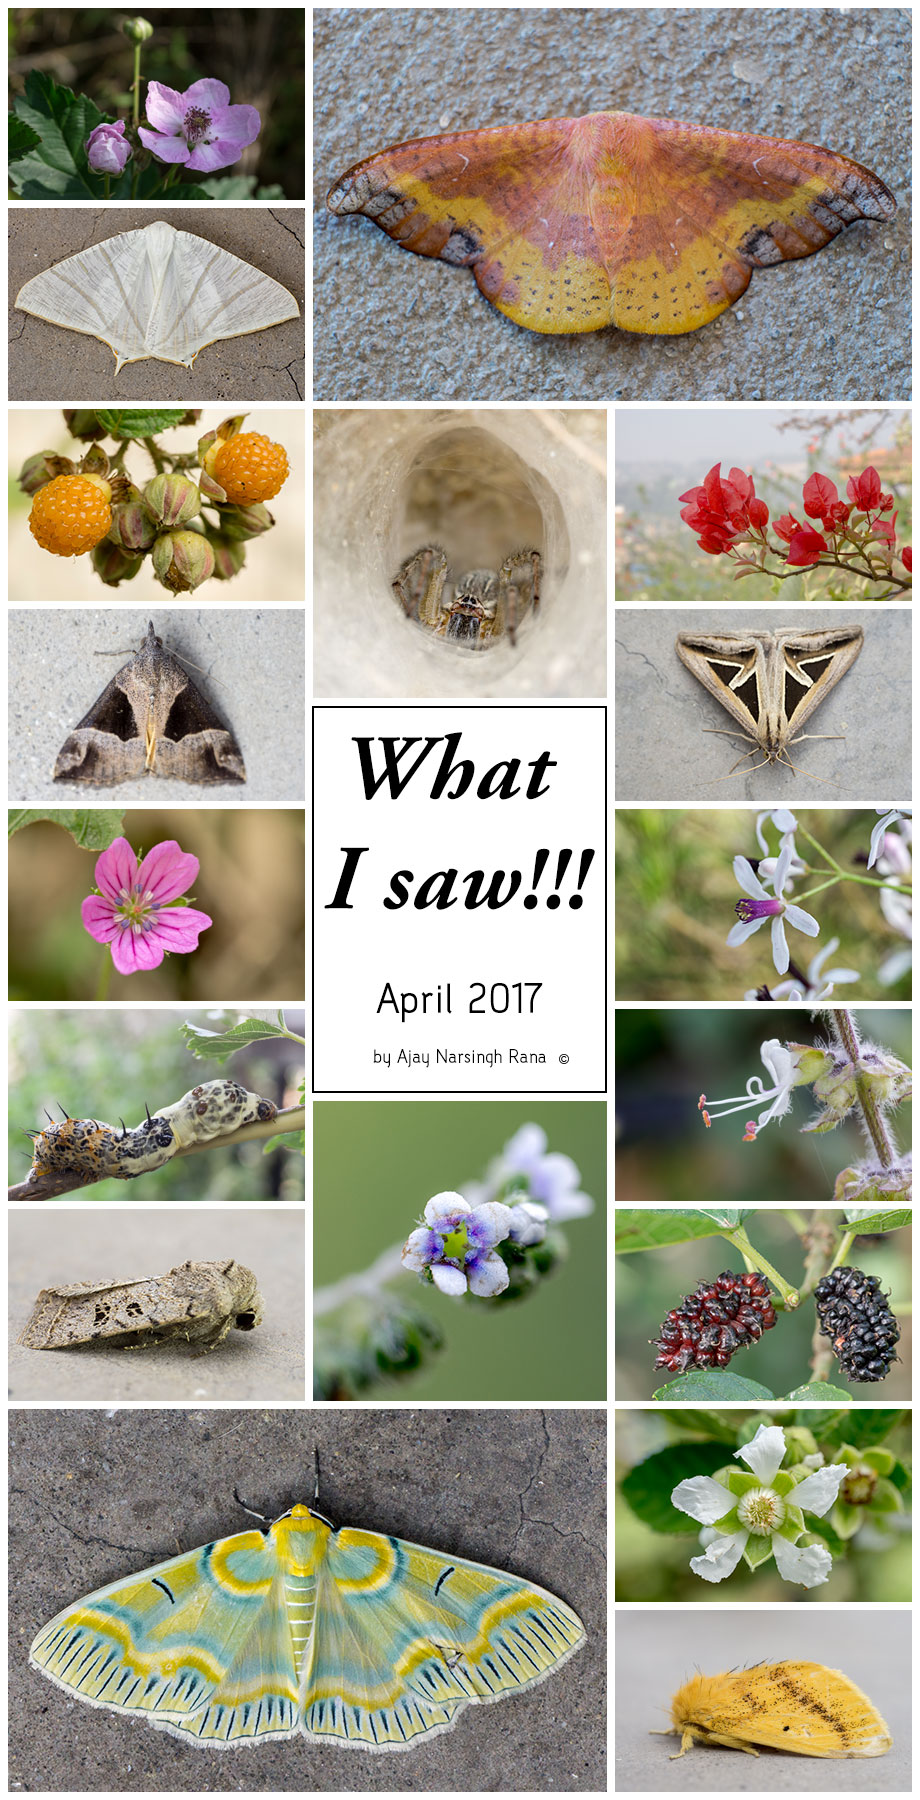 What I Saw in April 2017